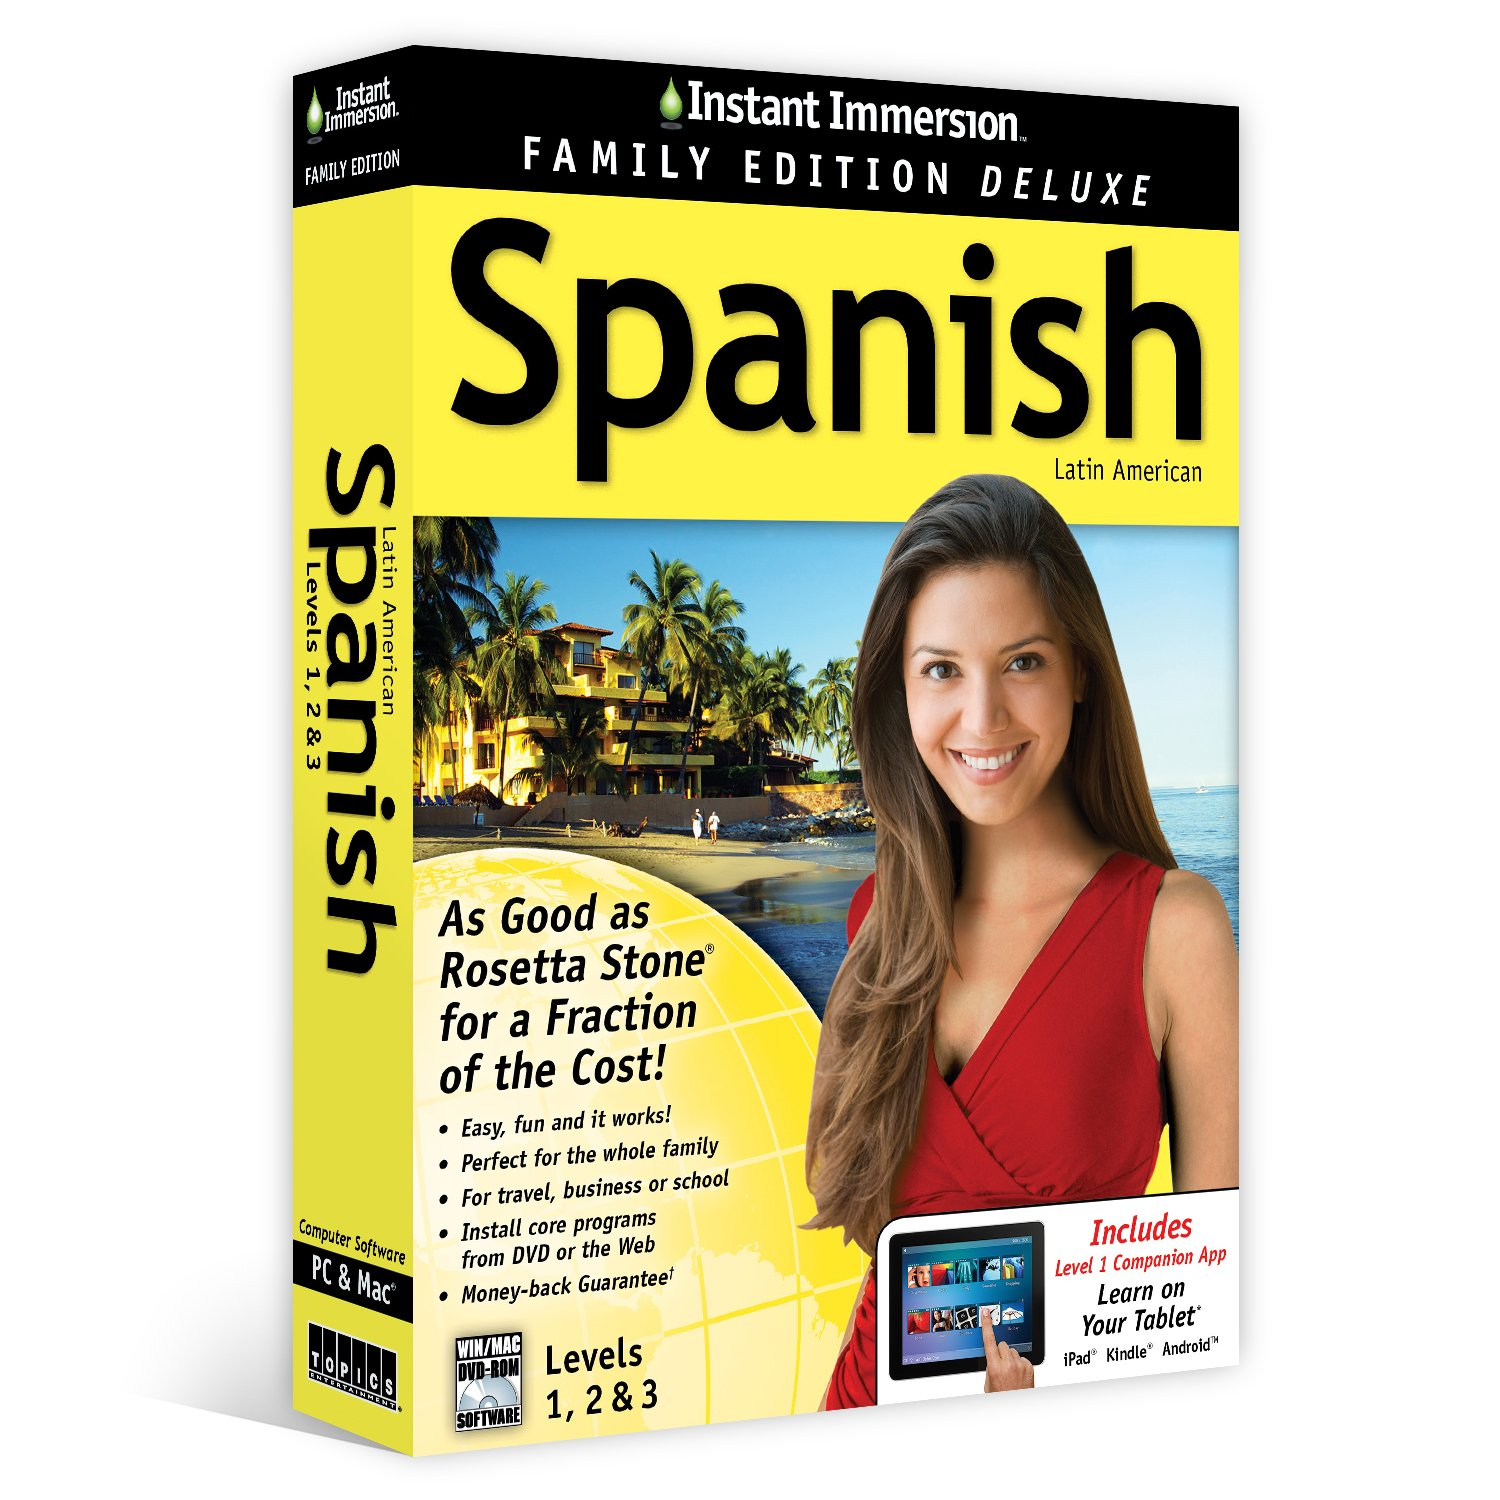 Instant Immersion Spanish Levels 1,2 & 3 Family Edition Deluxe (Unlimited Household Use)